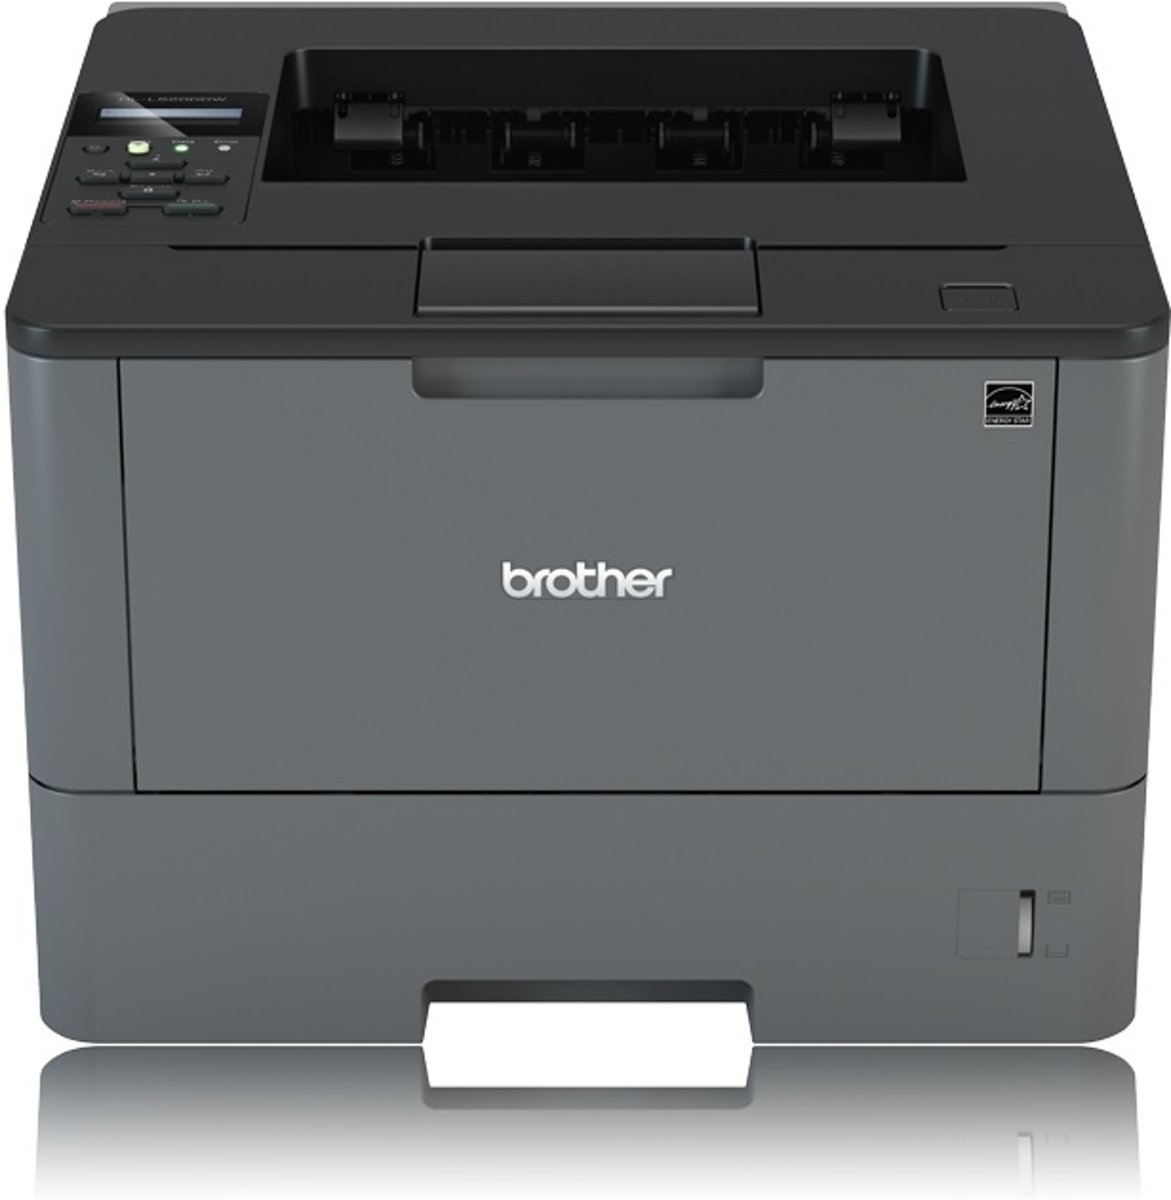 Brother HL-L5200DW - Laserprinter 128MB 40ppm A4